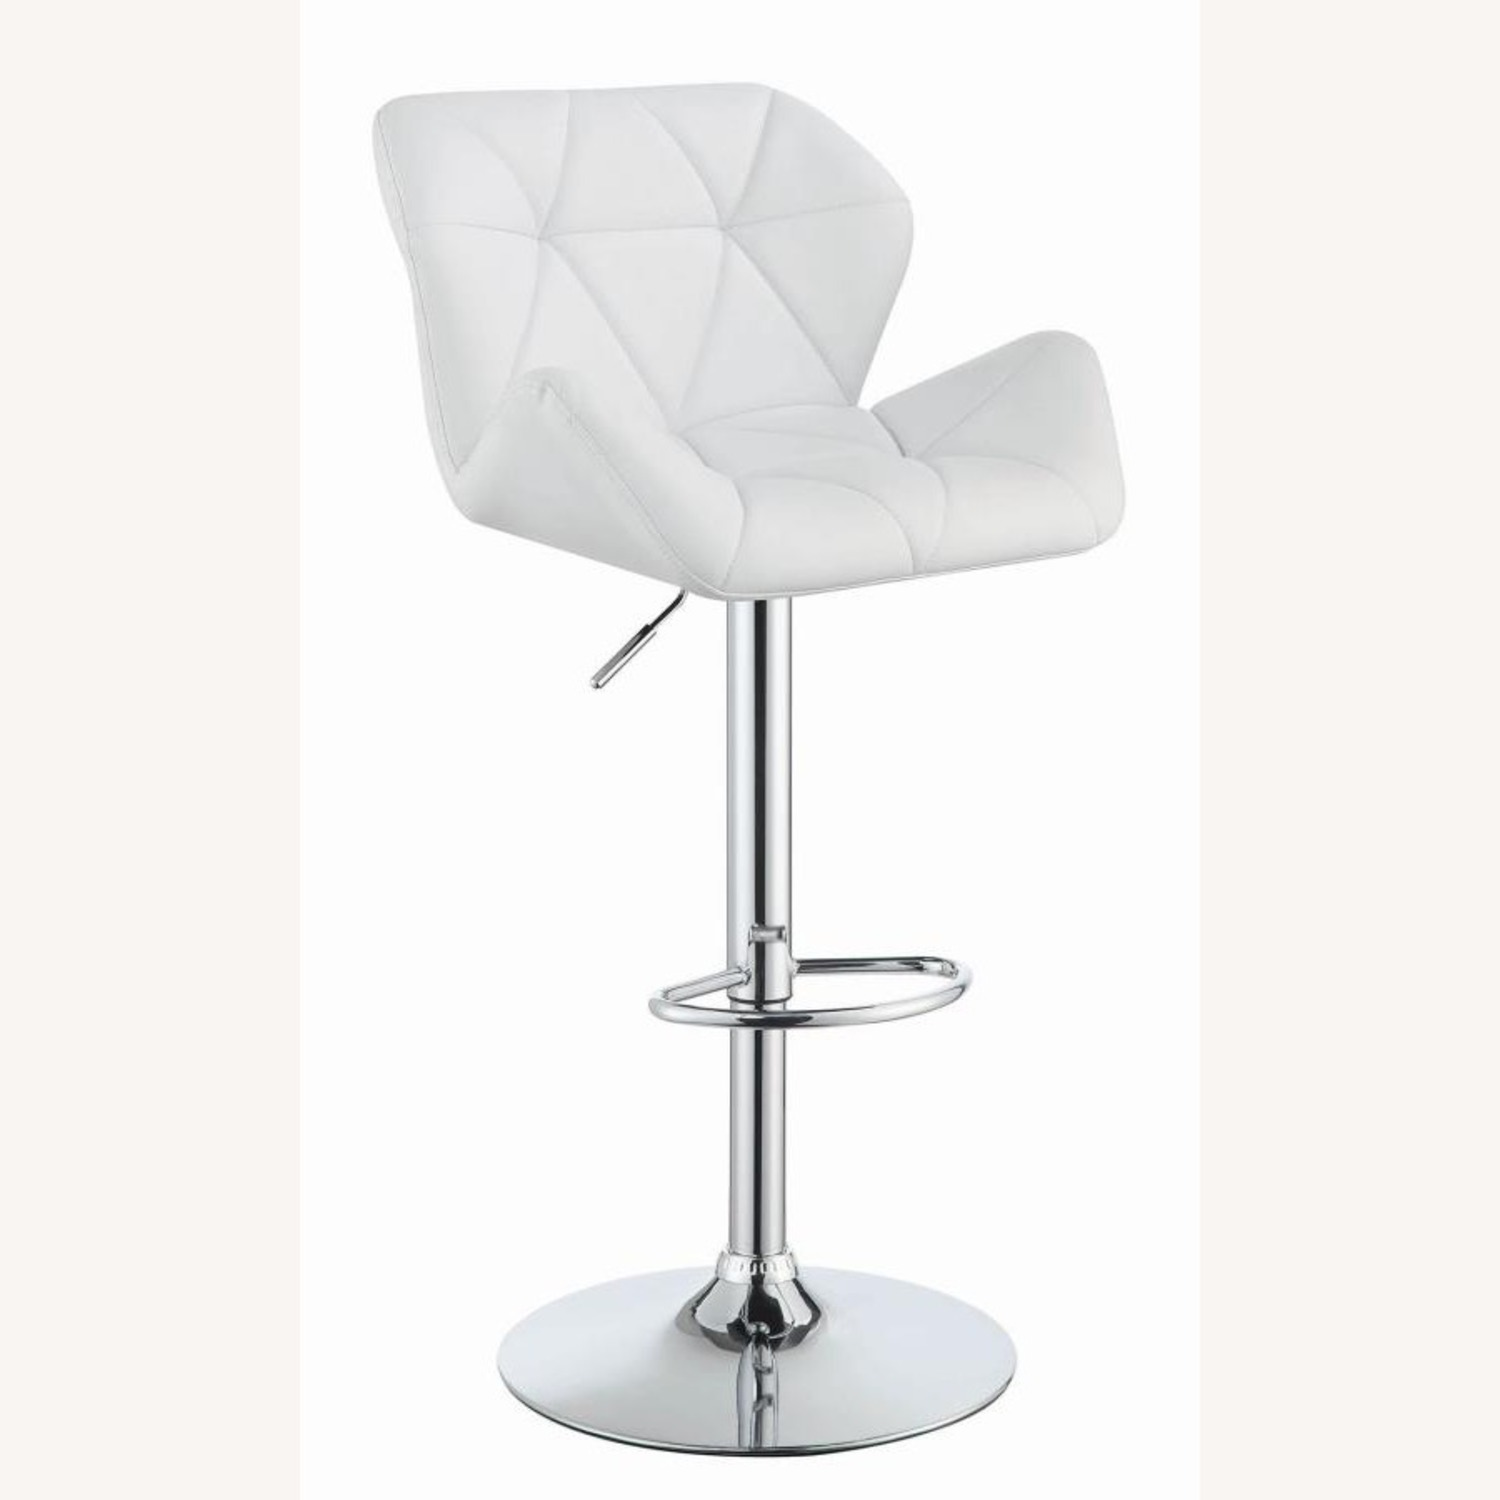 Adjustable Bar Stool In Tufted White Leatherette - image-0